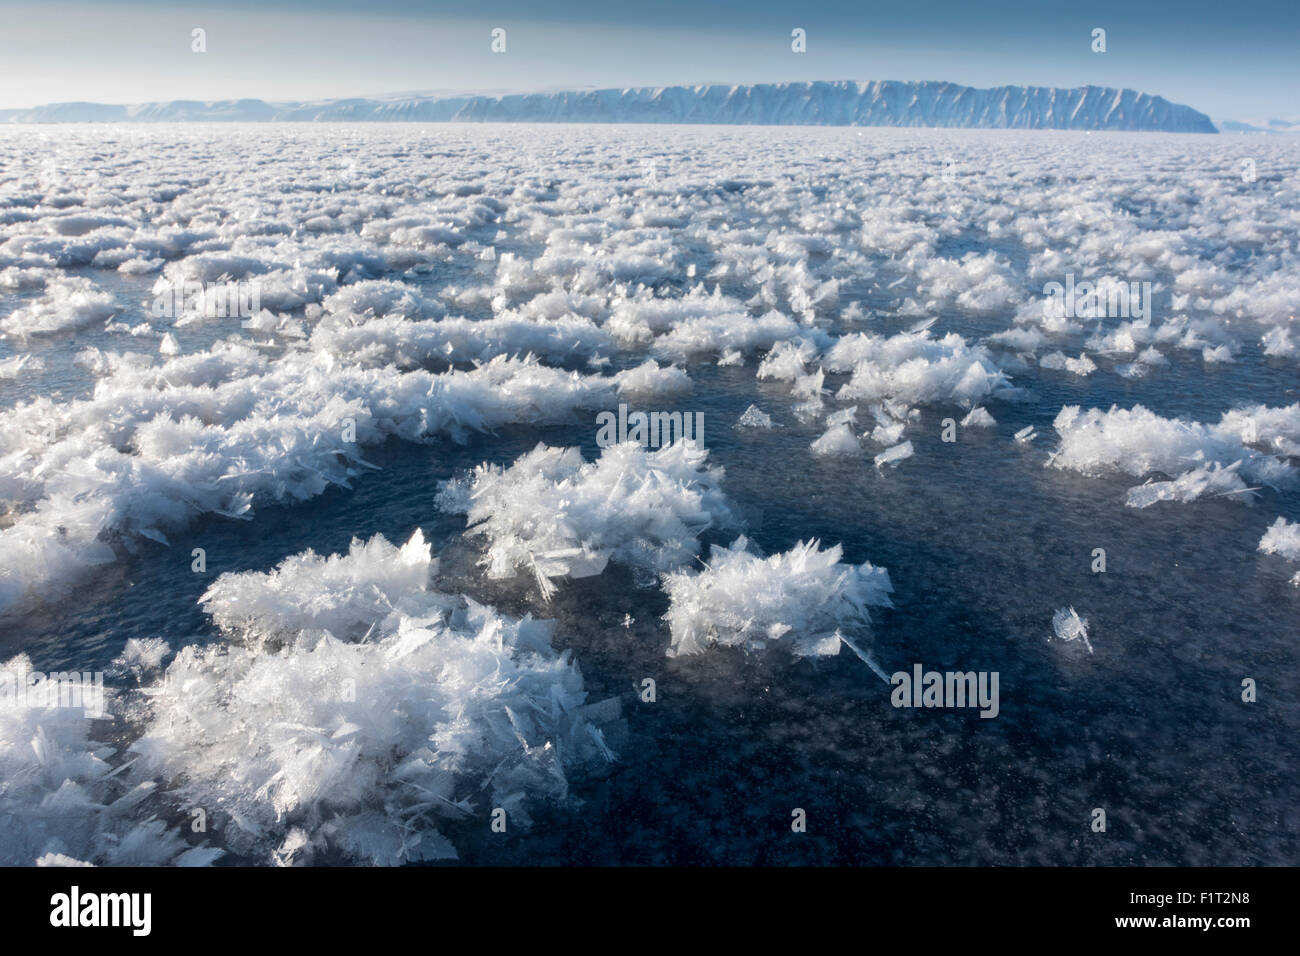 Frost flowers formed on thin sea ice when the atmosphere is much colder than the underlying ice, Greenland, Denmark - Stock Image